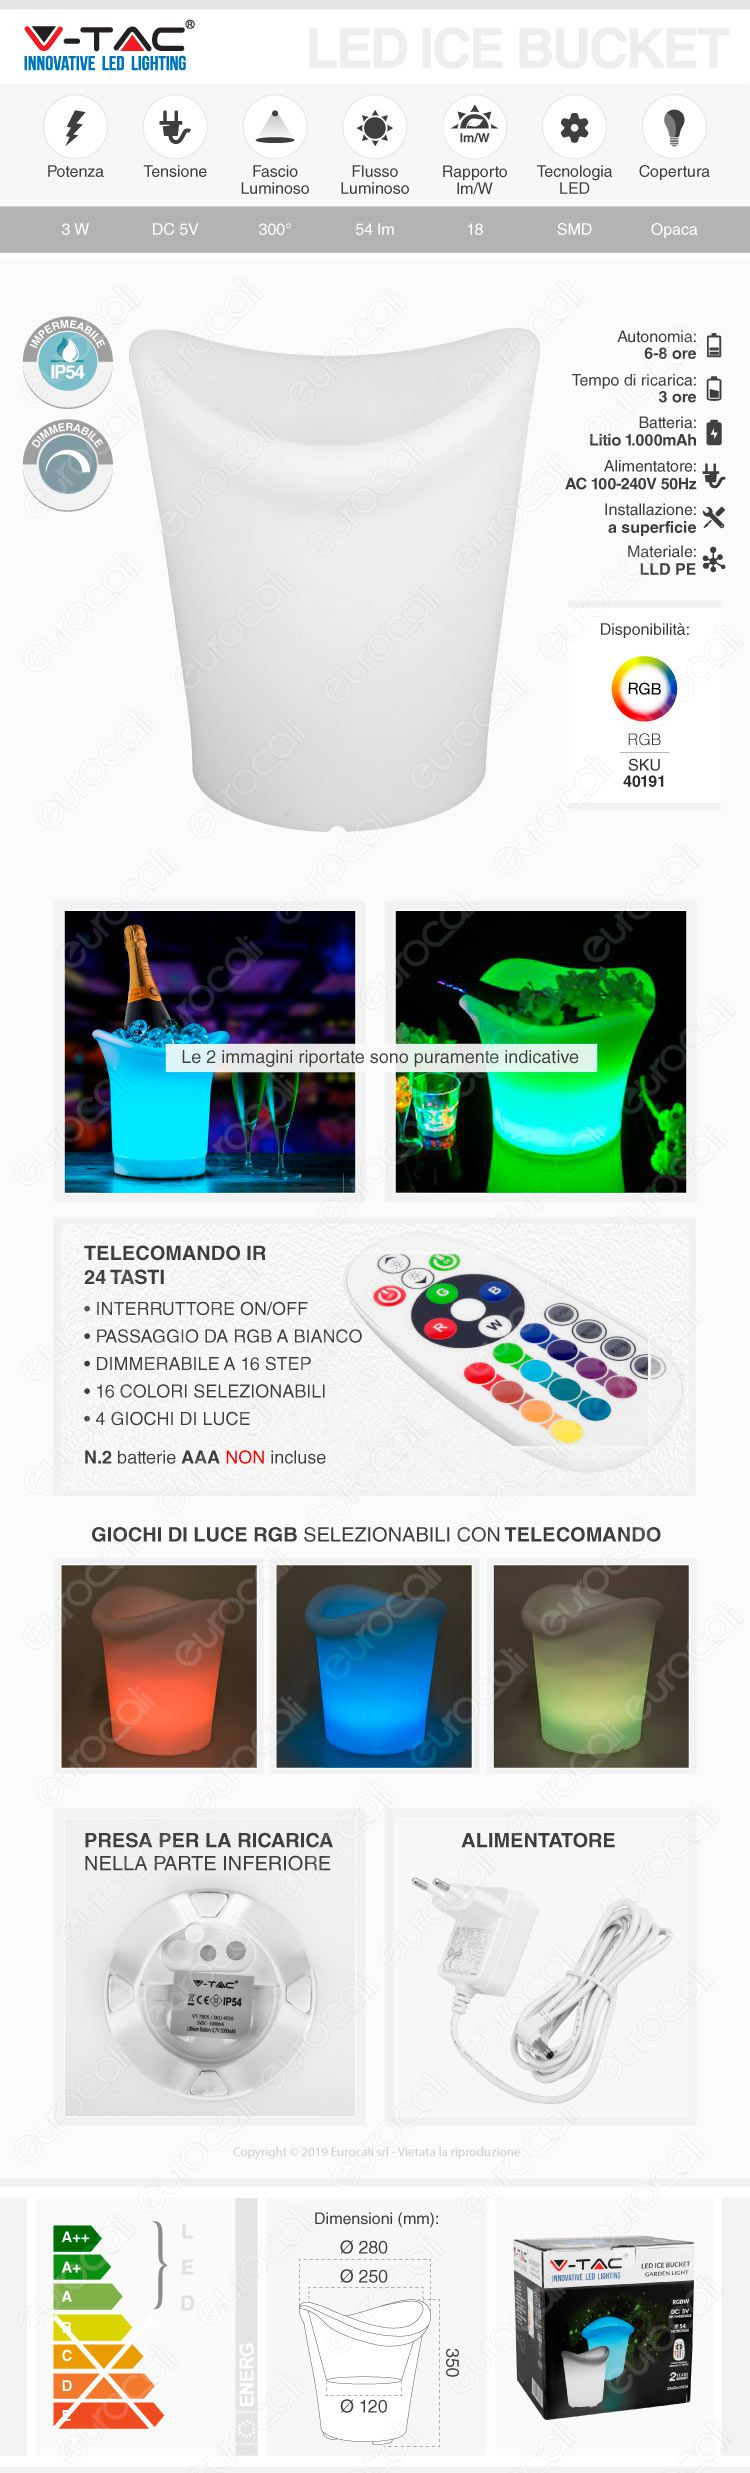 V-Tac VT-7806 Lampada LED Ice Bucket Multicolor RGB LED 3W Ricaricabile con Telecomando IP54